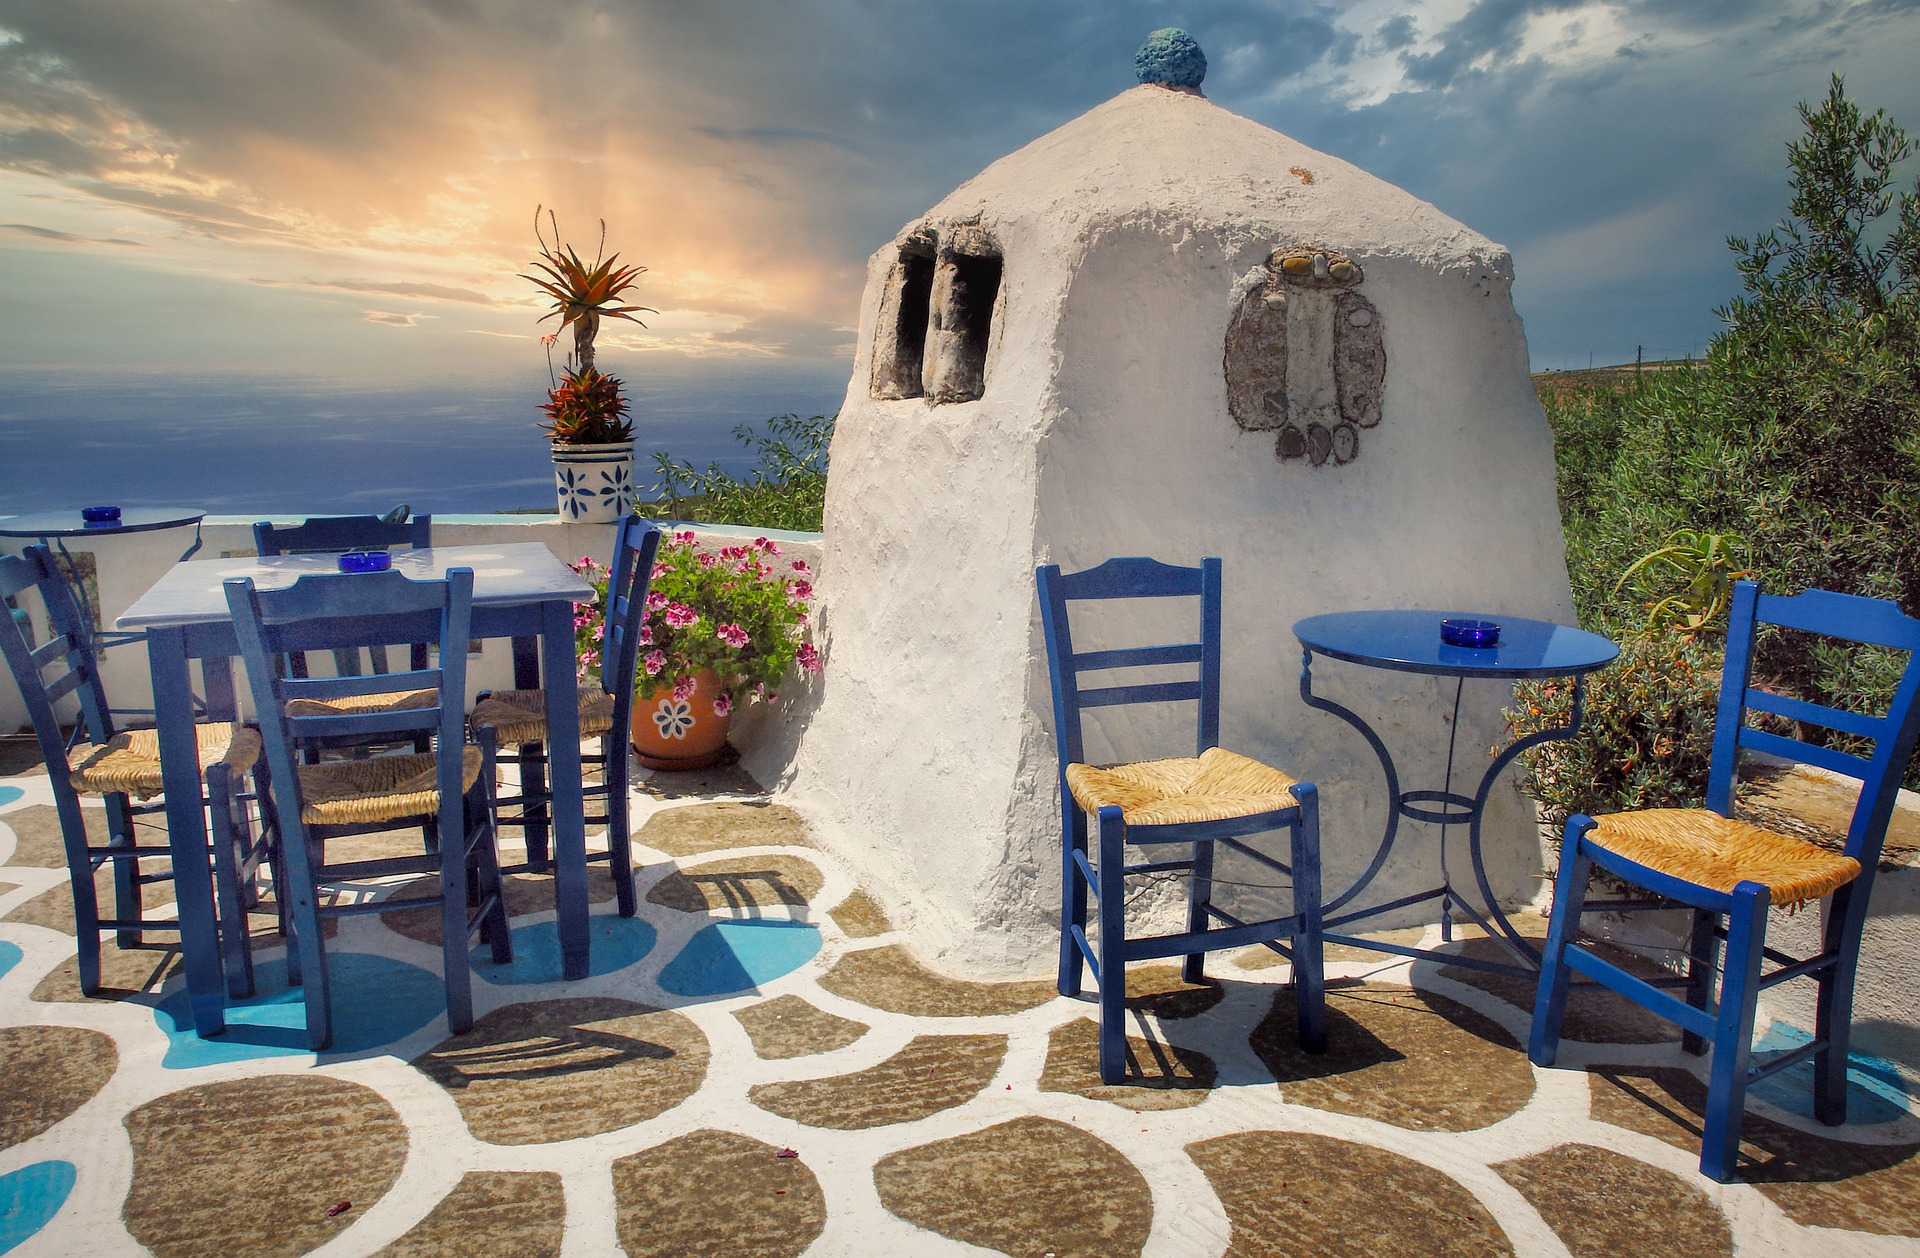 Jet2 has holidays to Greece until late autumn, should you book?